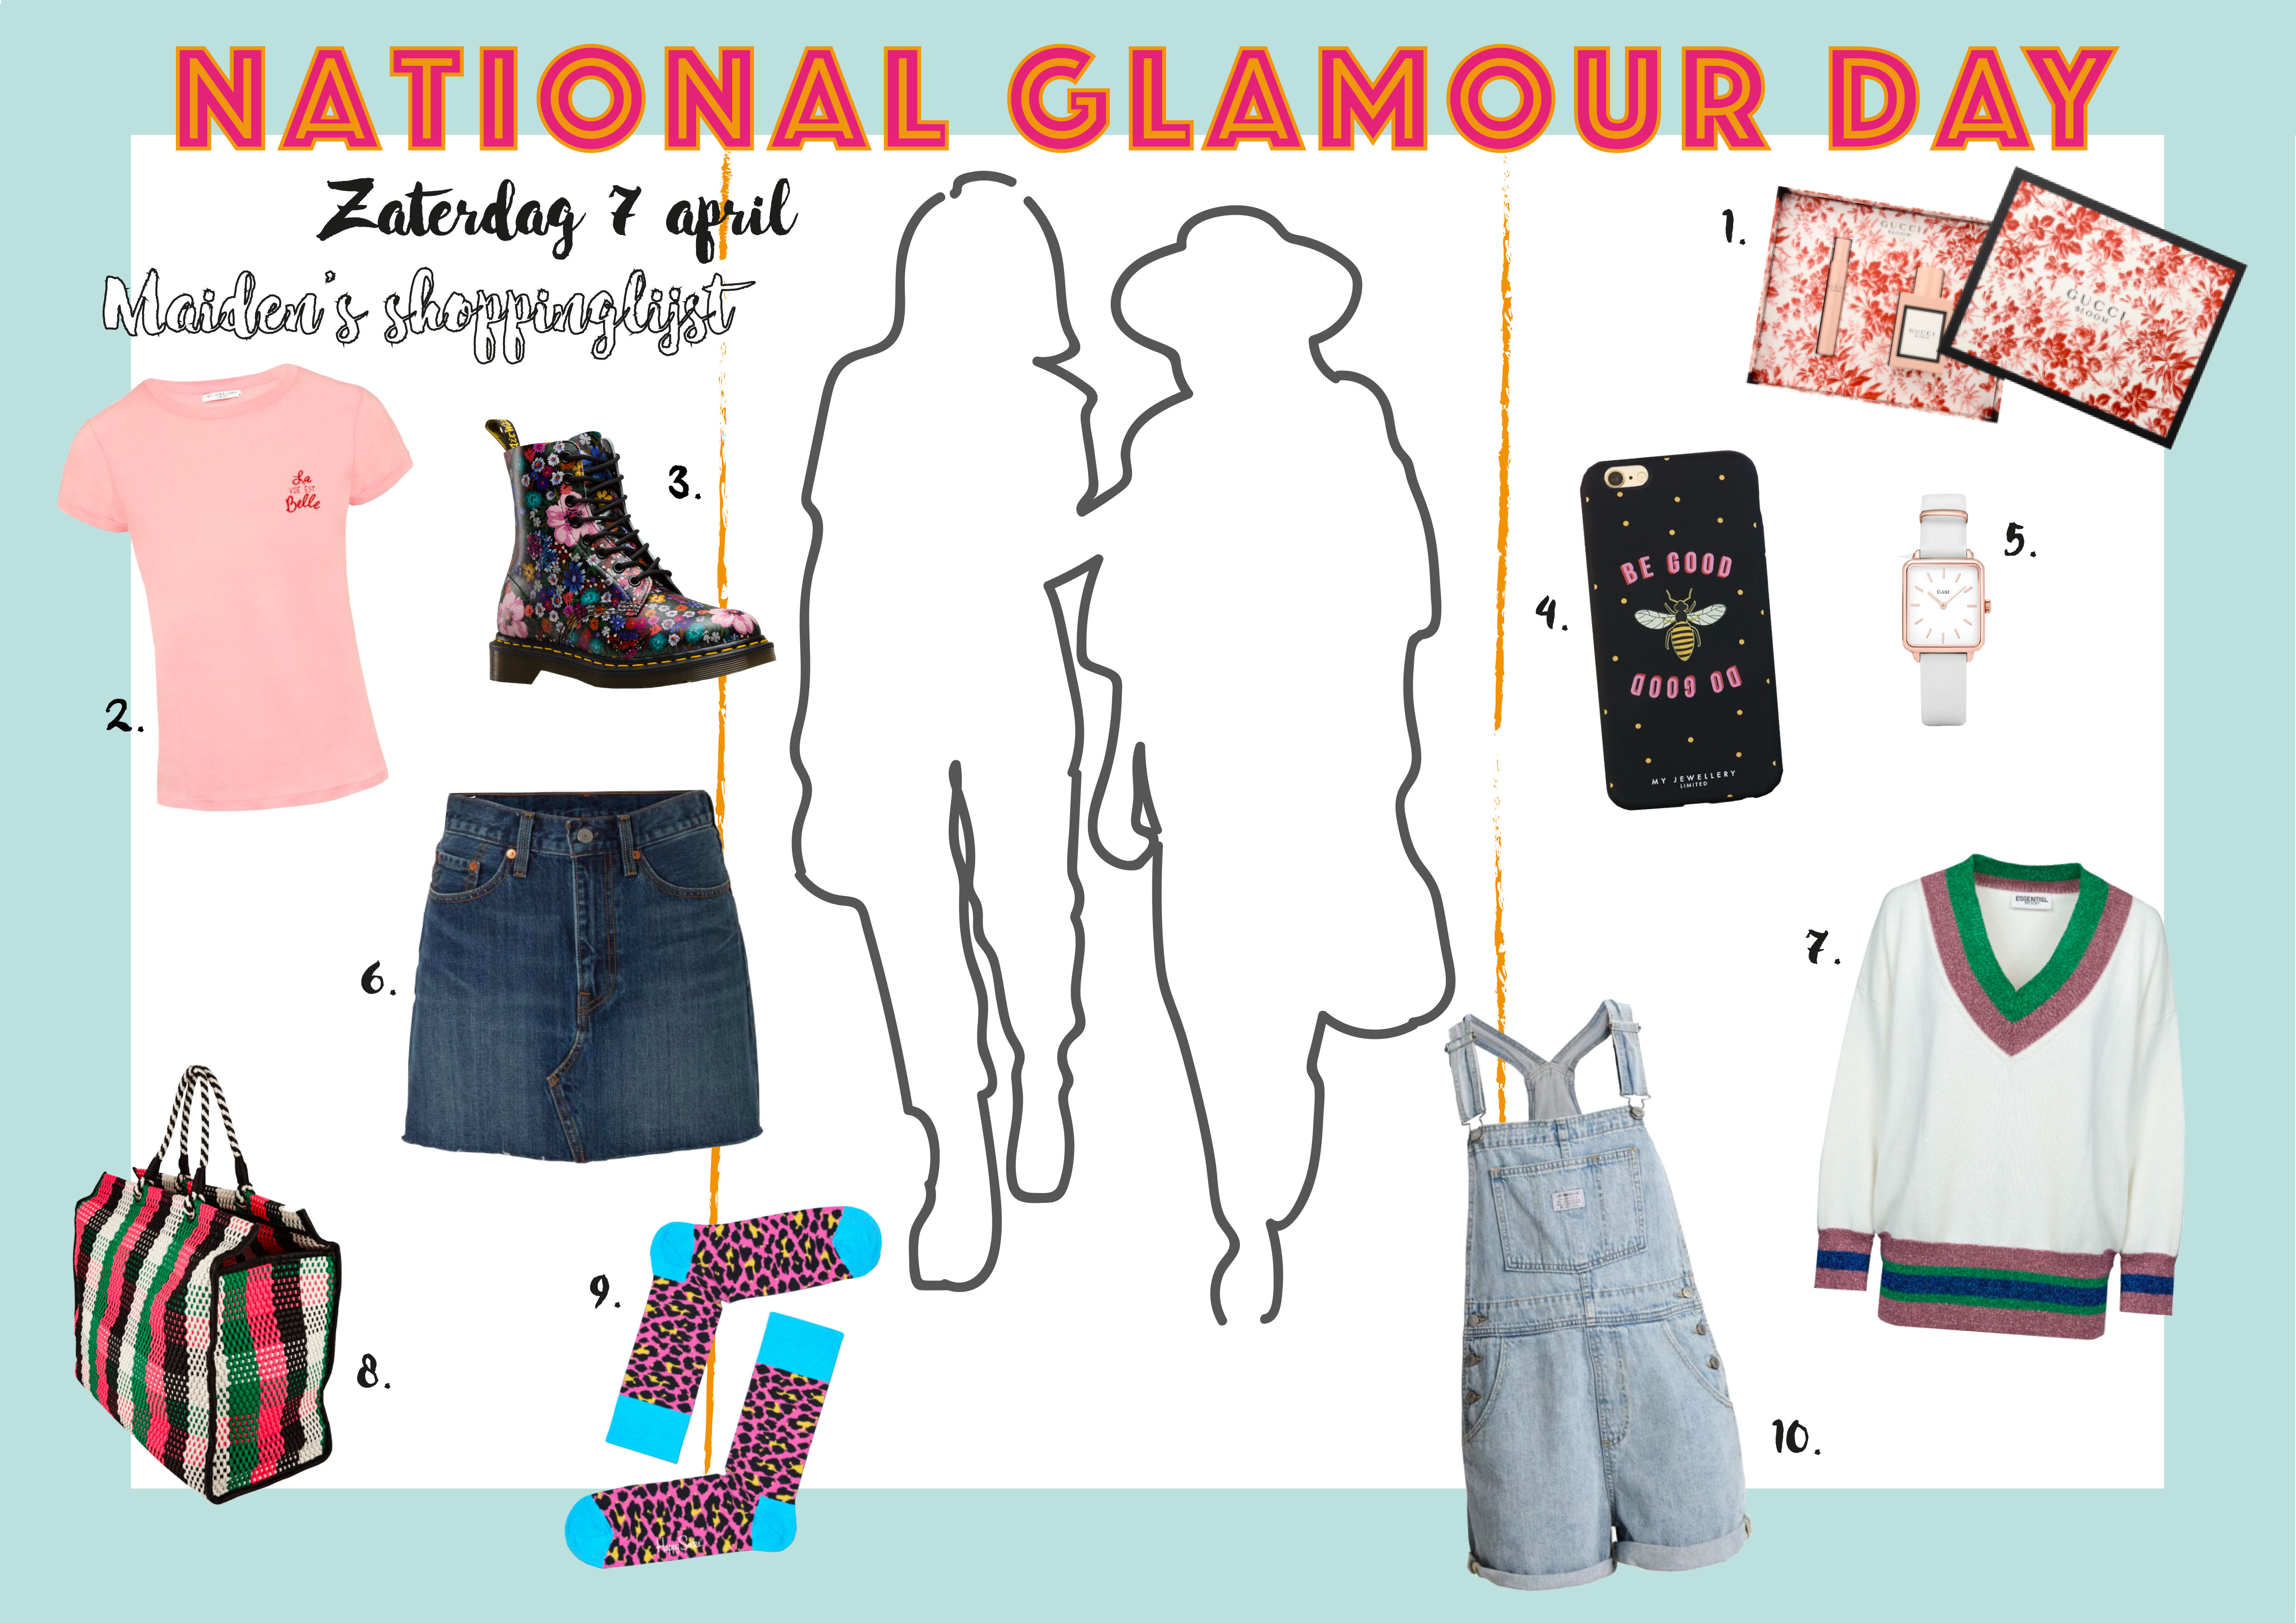 Maiden's shoppinglijst voor National Glamour Day